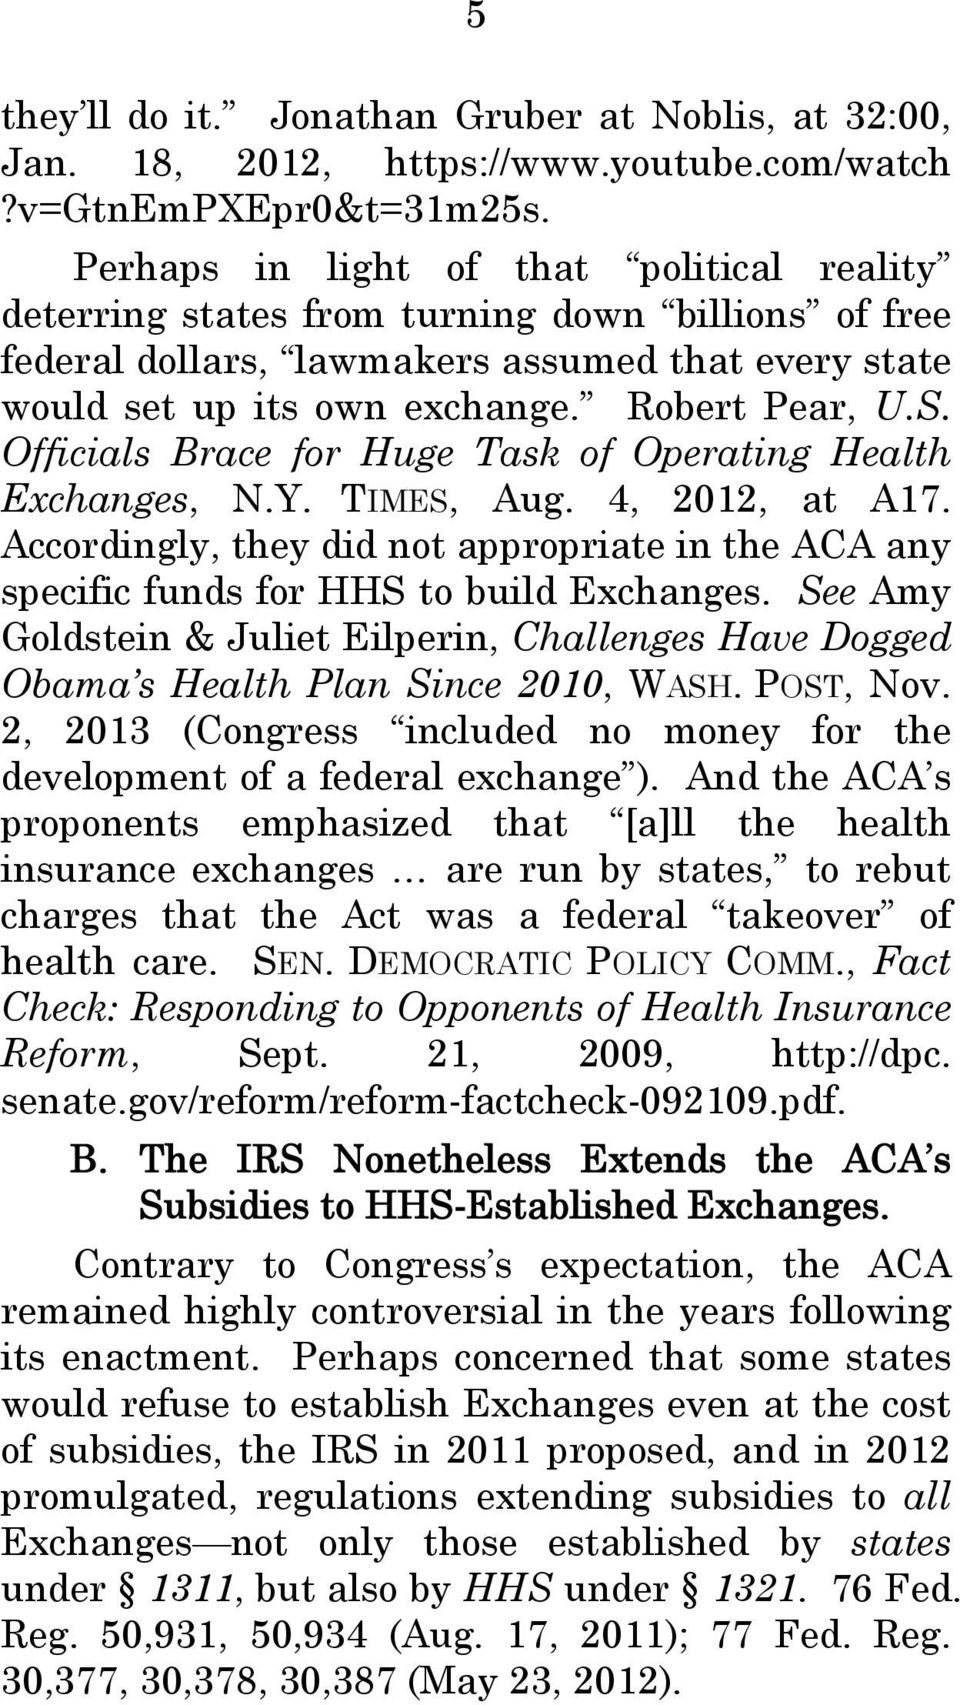 Officials Brace for Huge Task of Operating Health Exchanges, N.Y. TIMES, Aug. 4, 2012, at A17. Accordingly, they did not appropriate in the ACA any specific funds for HHS to build Exchanges.